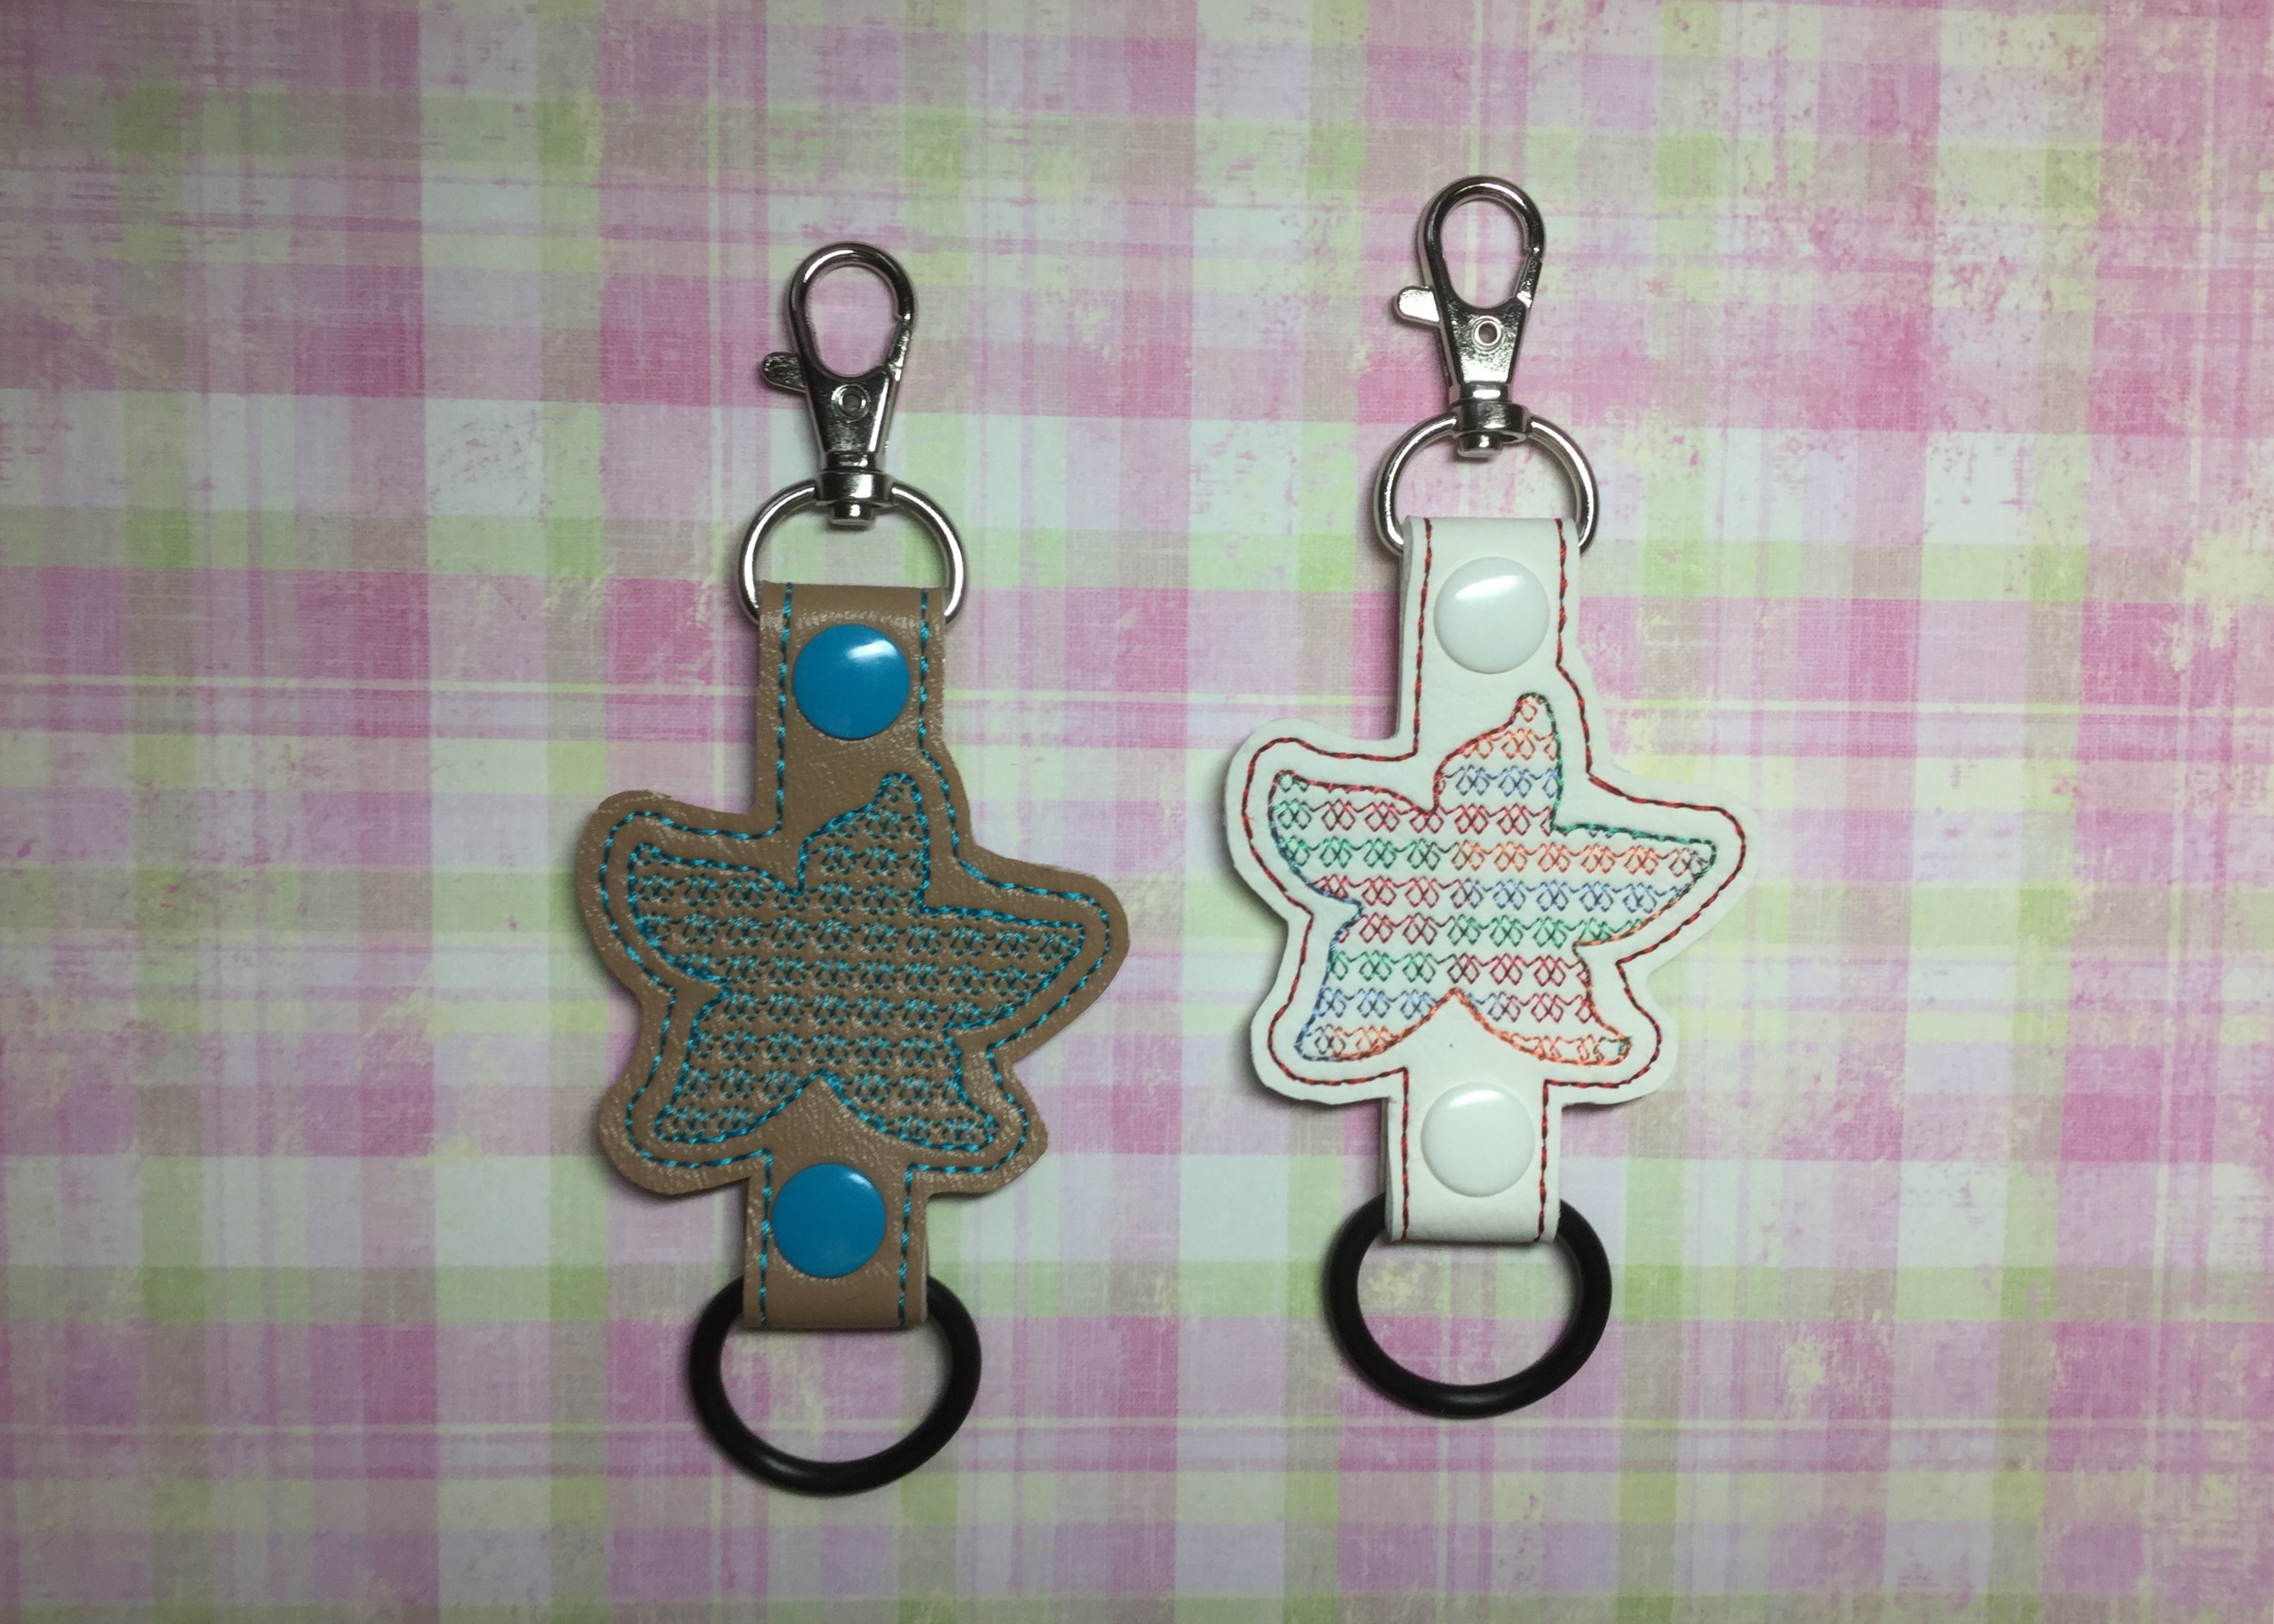 Starfish Motif Water Bottle Holder Embroidery Design